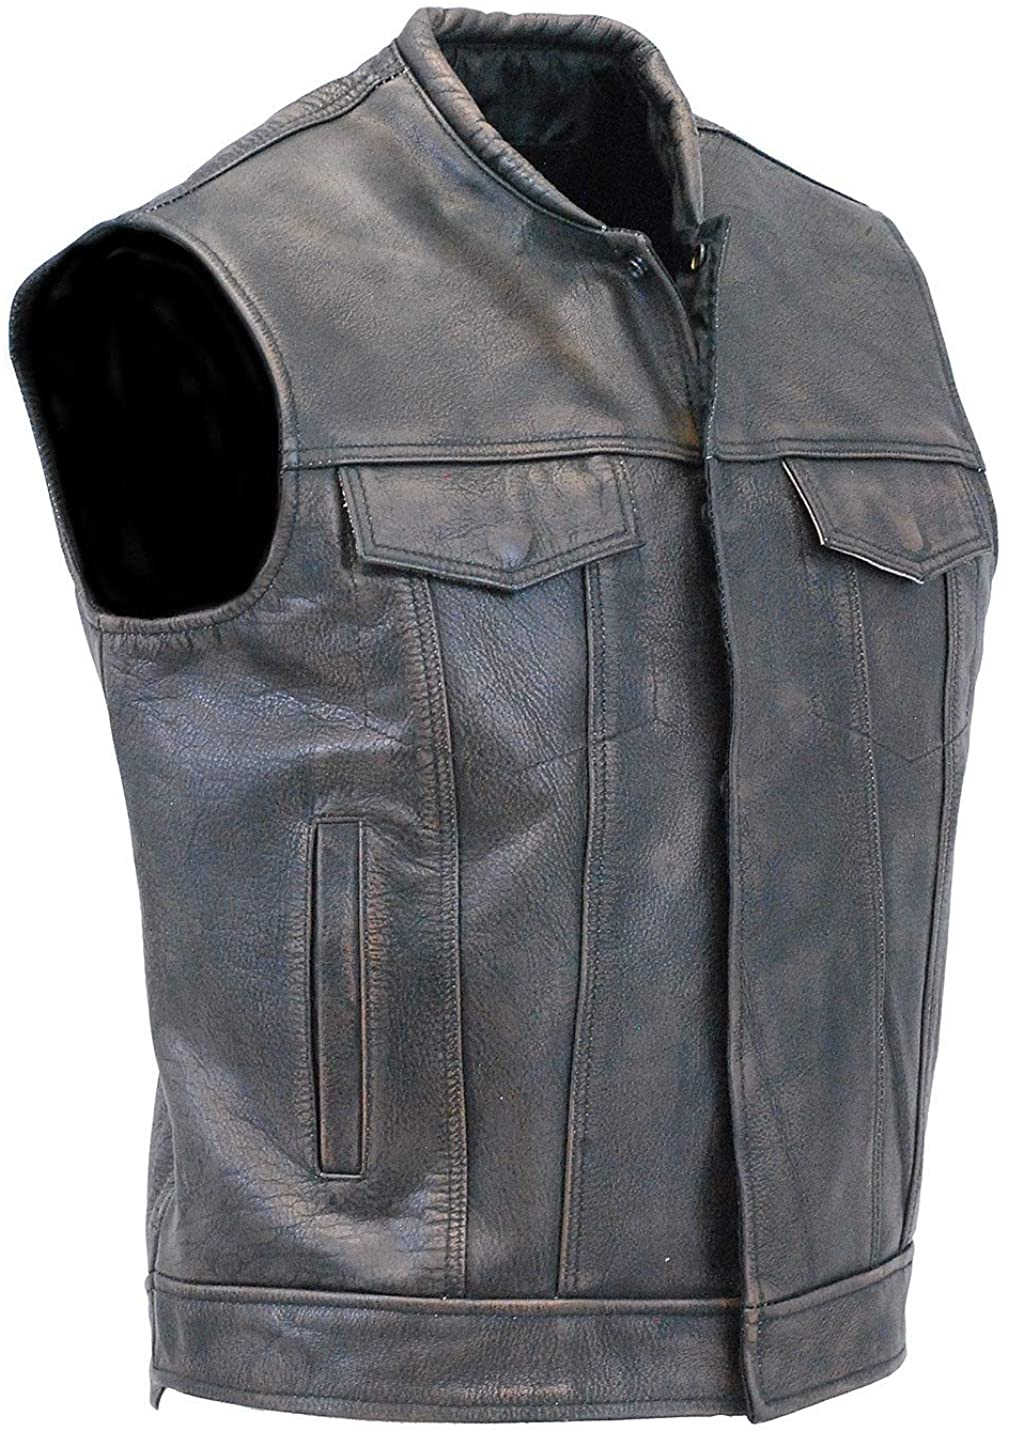 Jamin' Leather - Vintage Brown Leather Club Vest w/Dual CCW Pockets #VMA1018GN